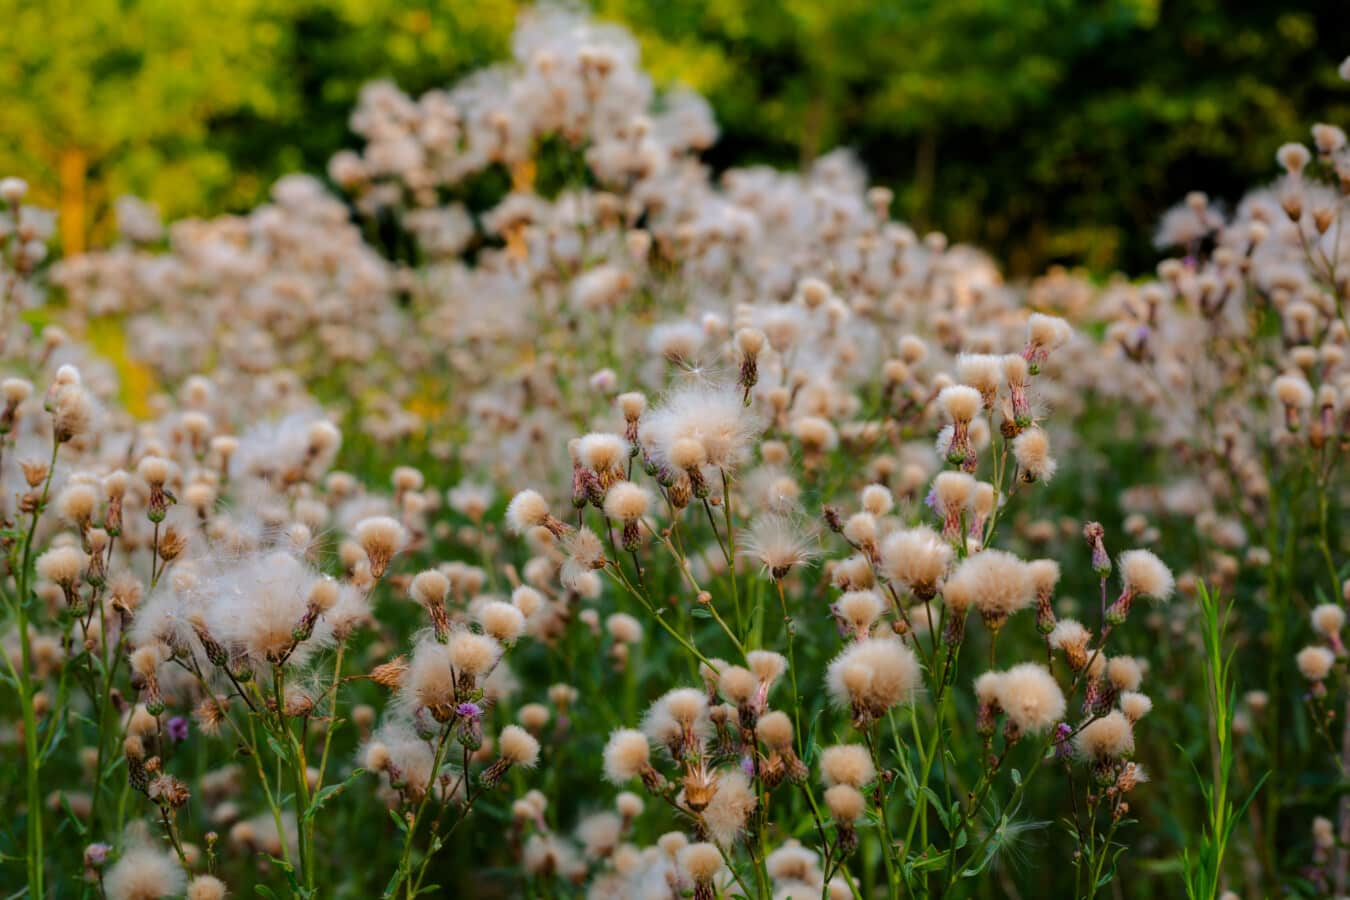 wildflower, blooming, grass plants, cotton grass, weed, plant, nature, flower, herb, outdoors